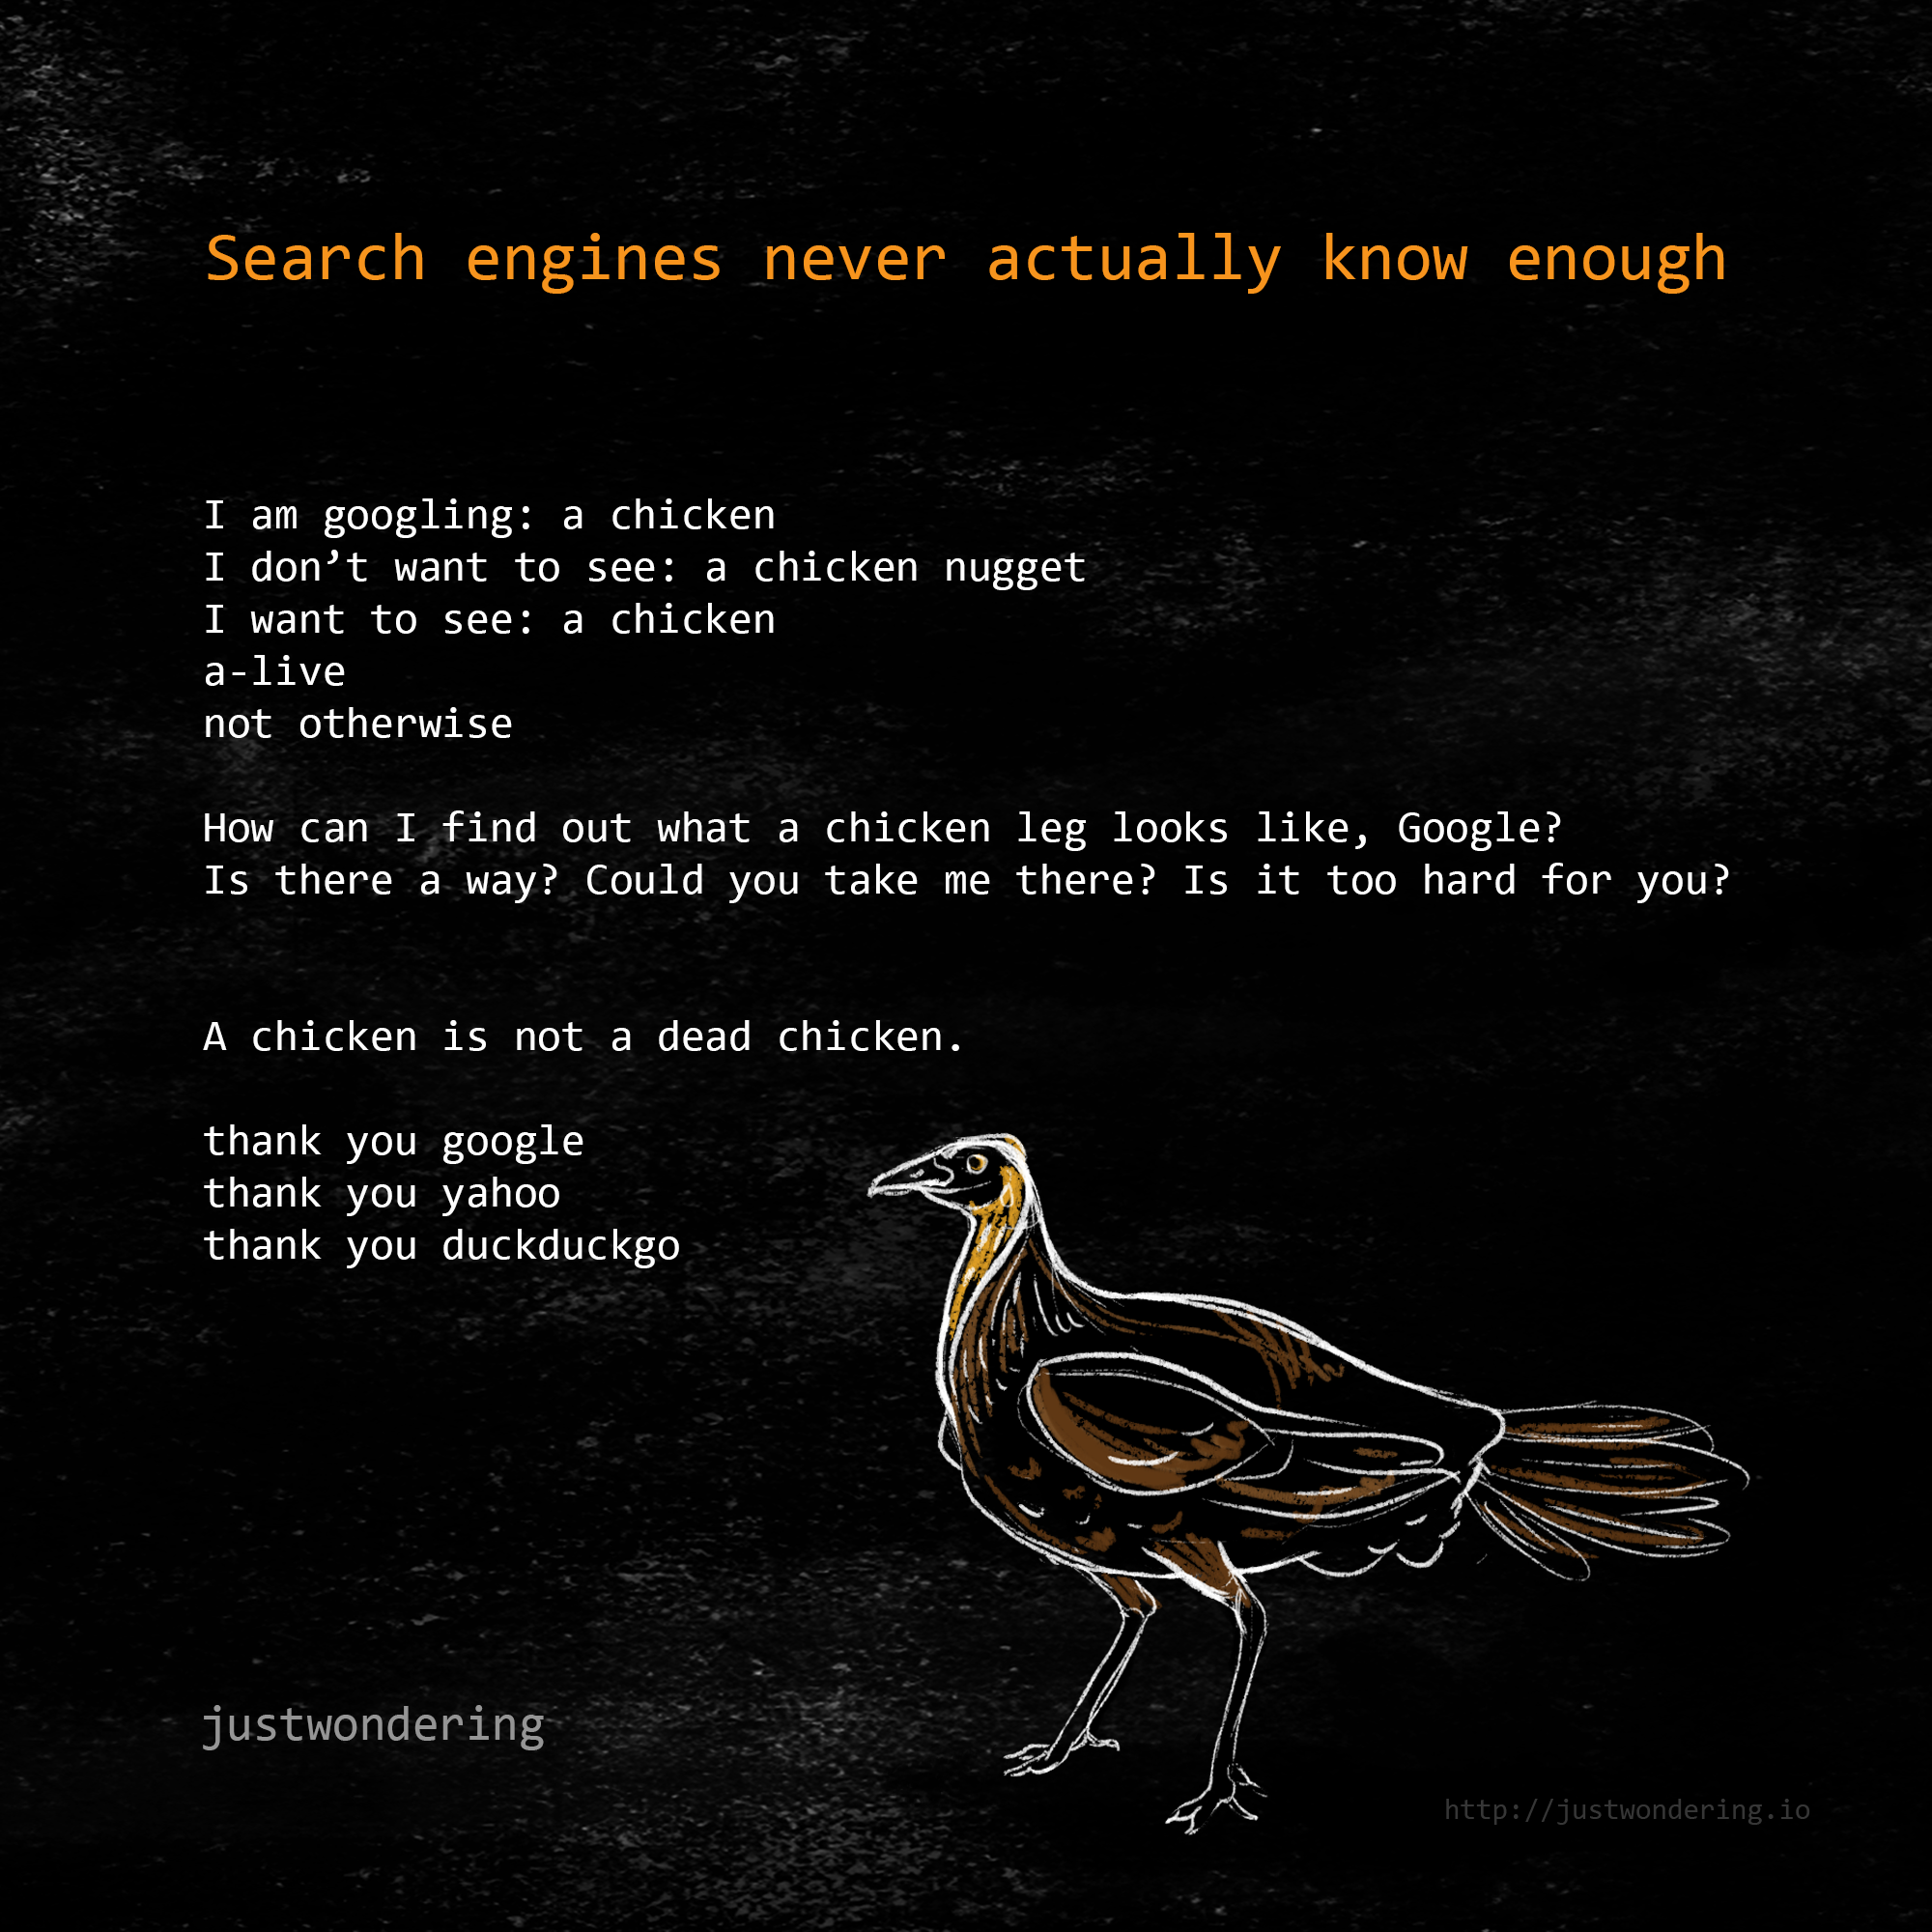 Poem-Search engines never actually know enough